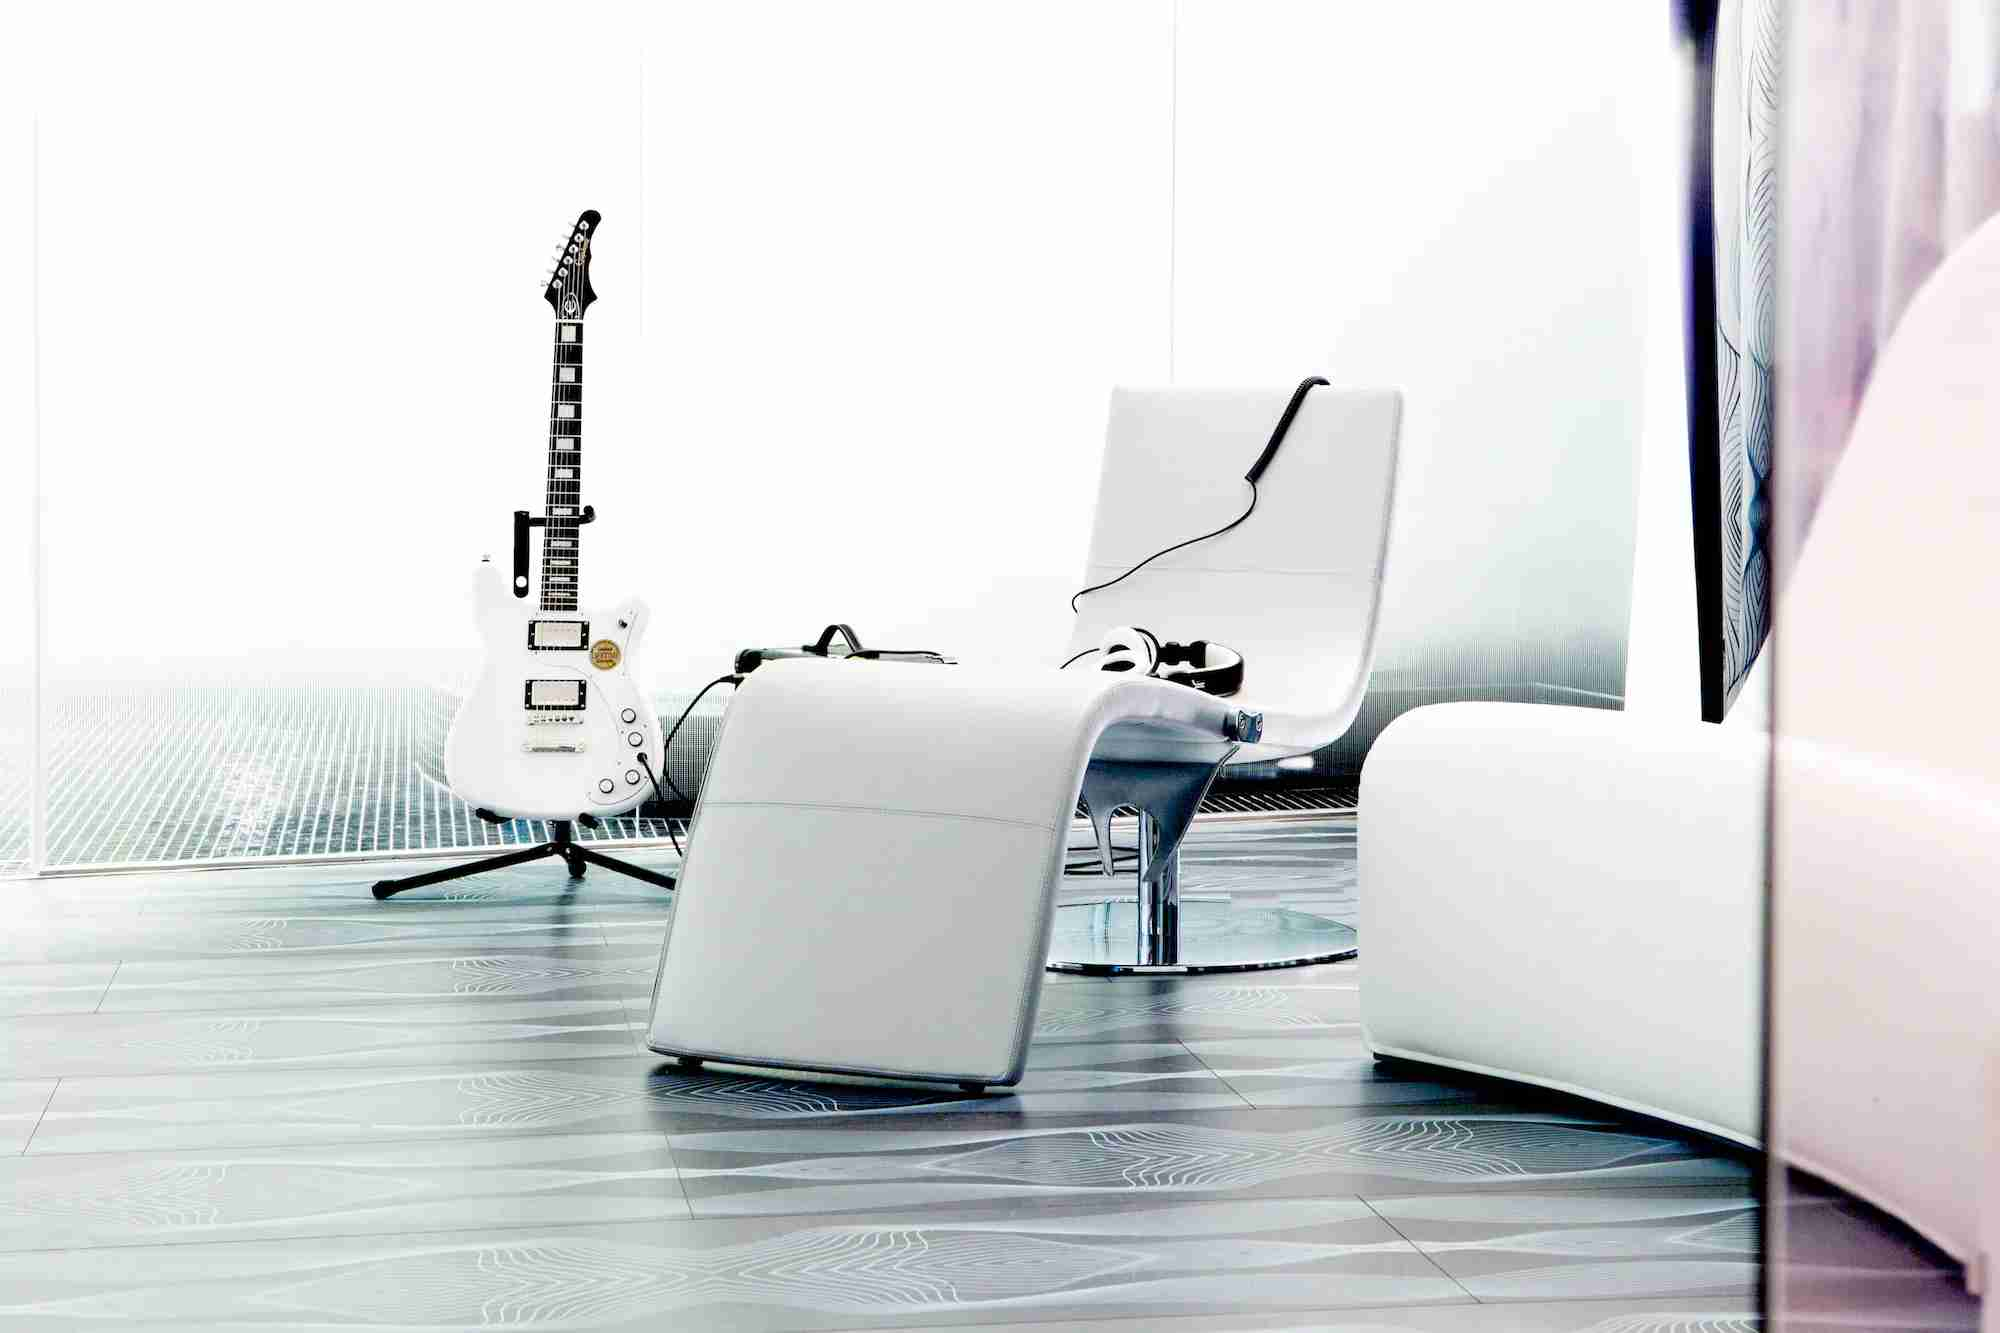 Rock out at the Hotel nhow Berlin. Image courtesy of Hotel nhow Berlin.